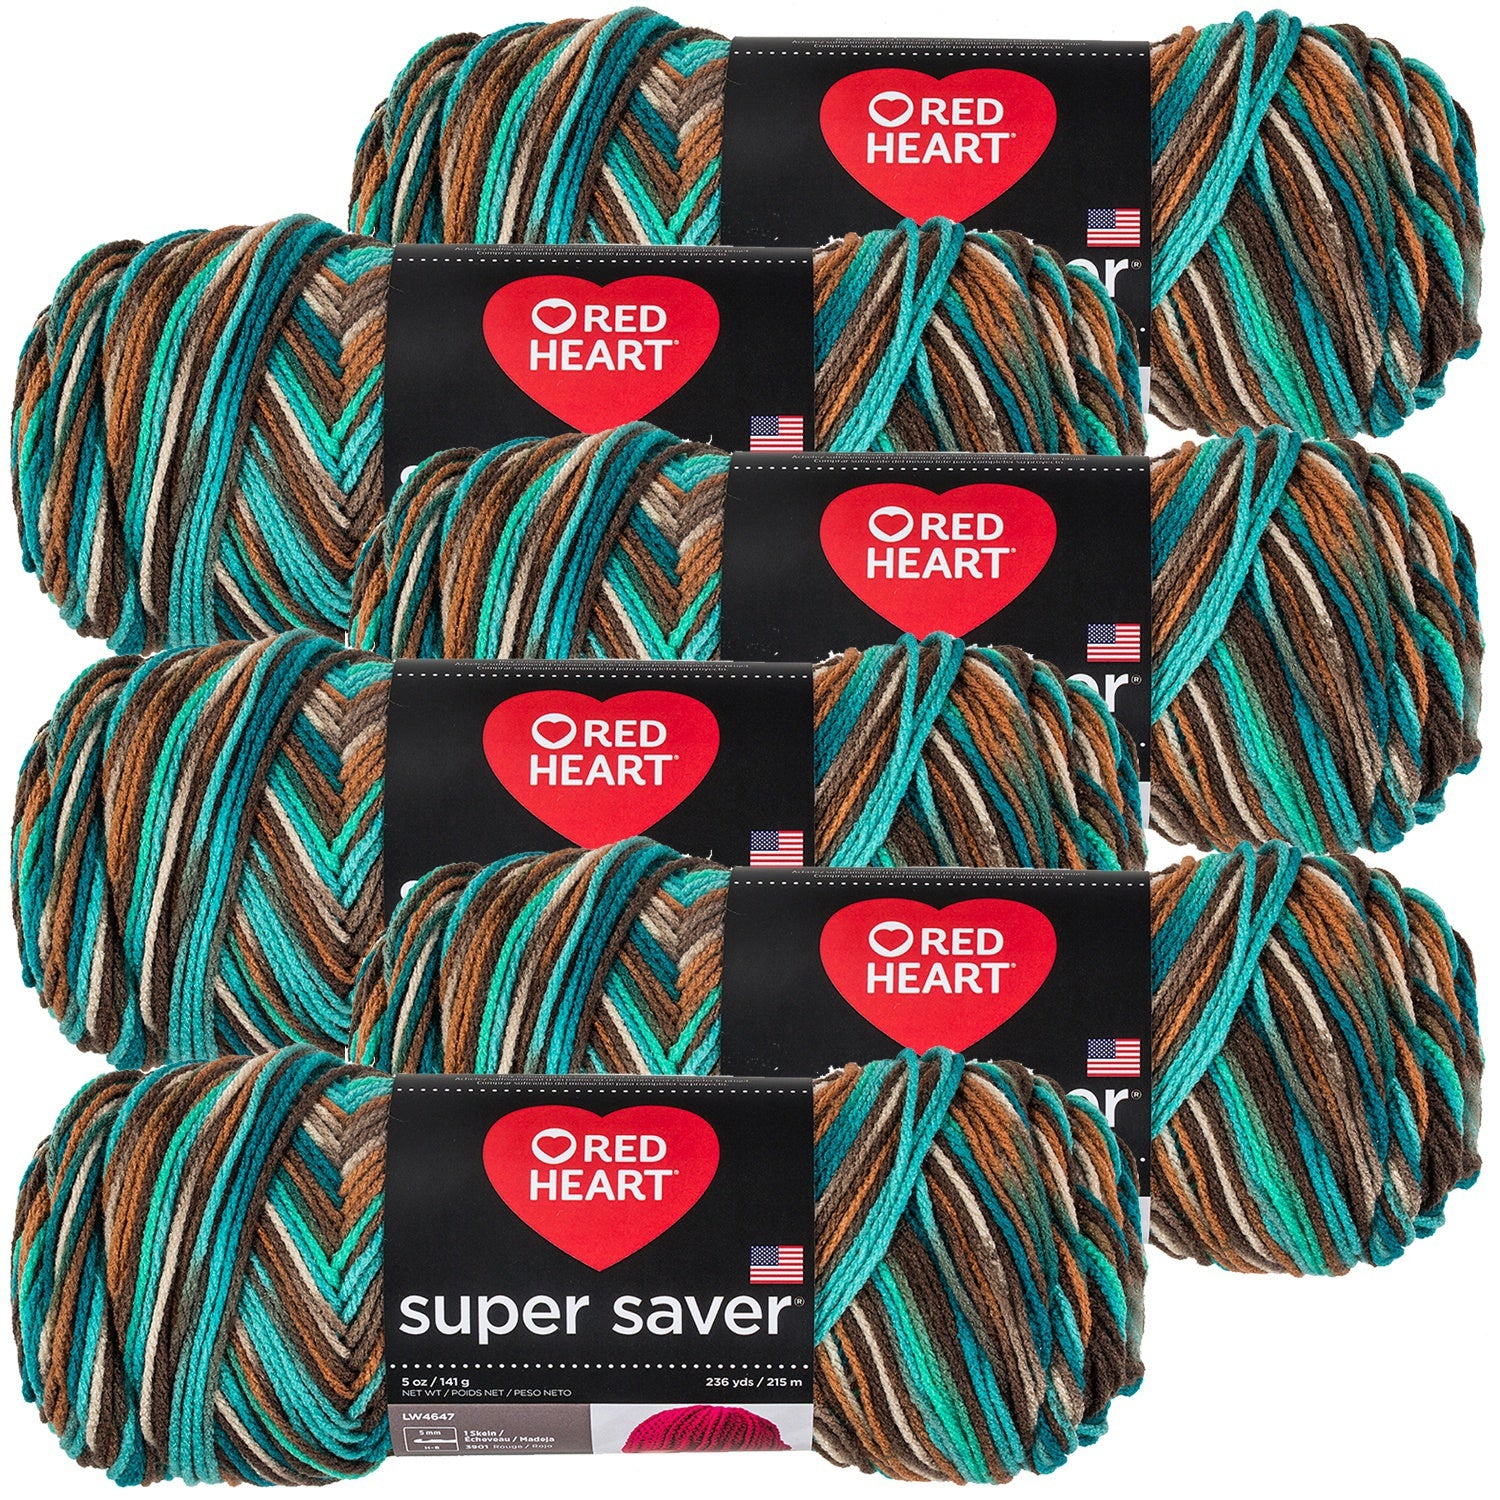 Red Heart Super Saver Yarn-Reef Perfect for all knit and crochet projects